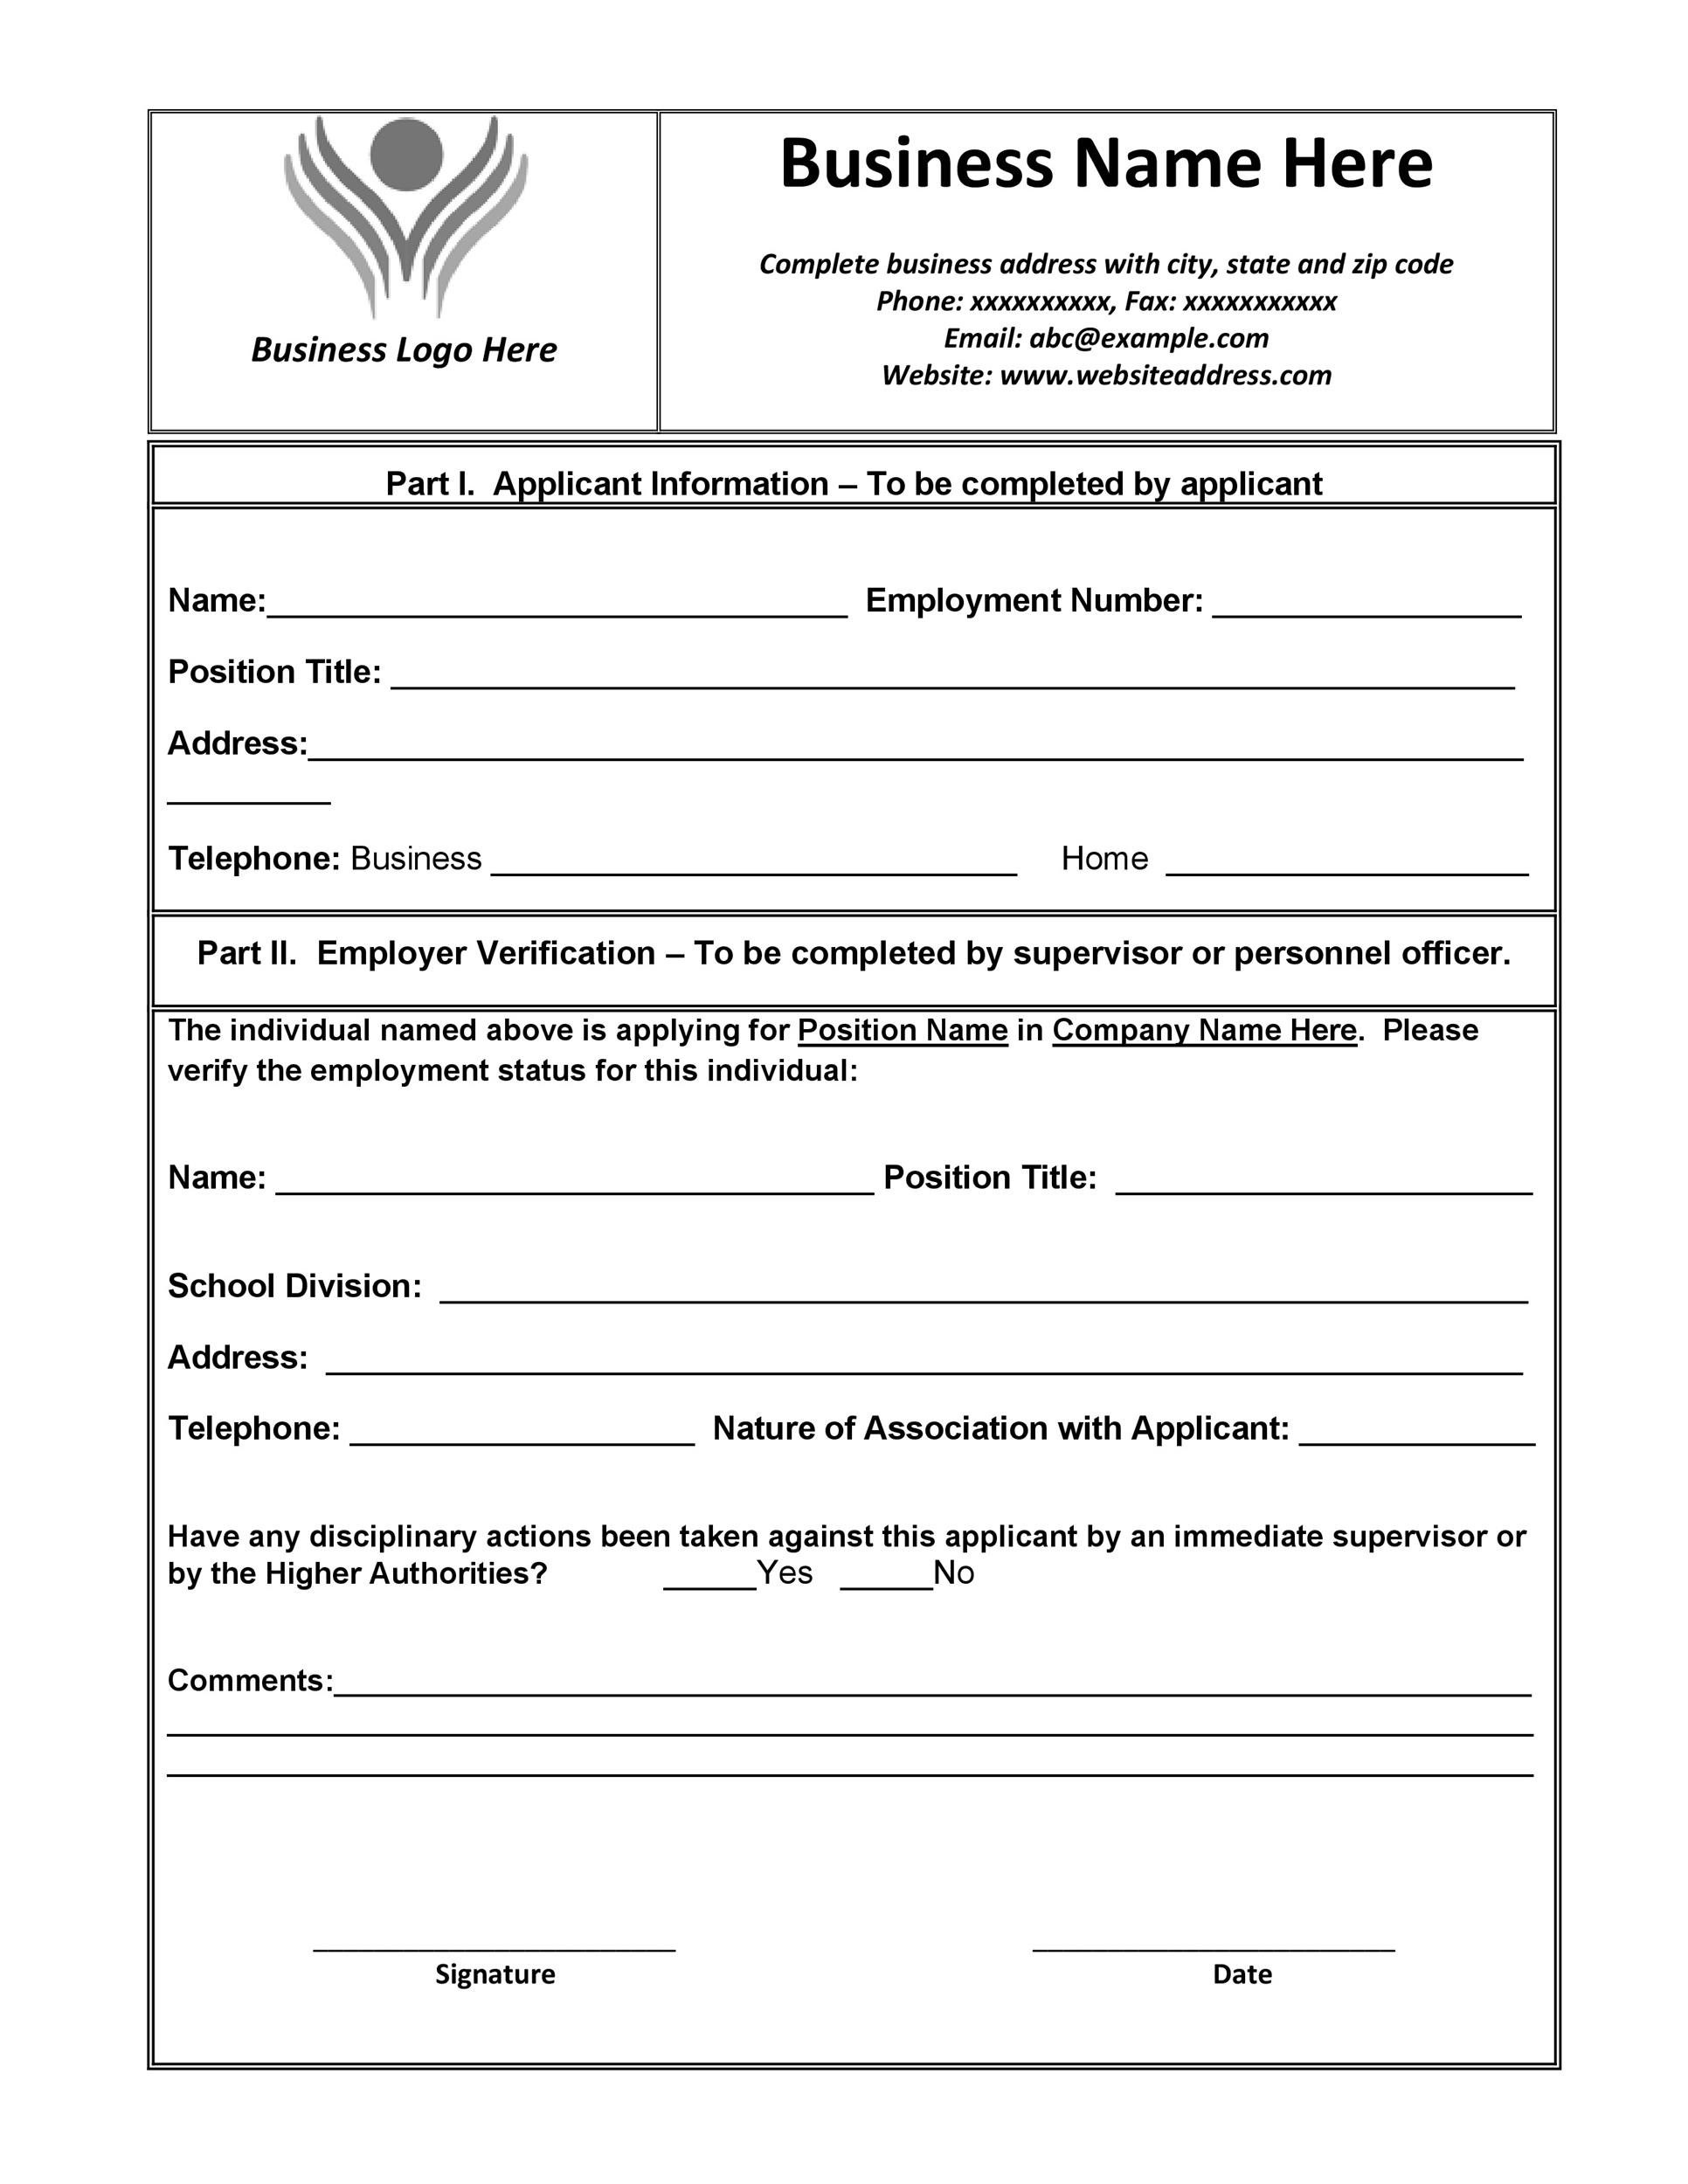 40 Proof of Employment Letters Verification Forms Samples – Example Employment Verification Letter